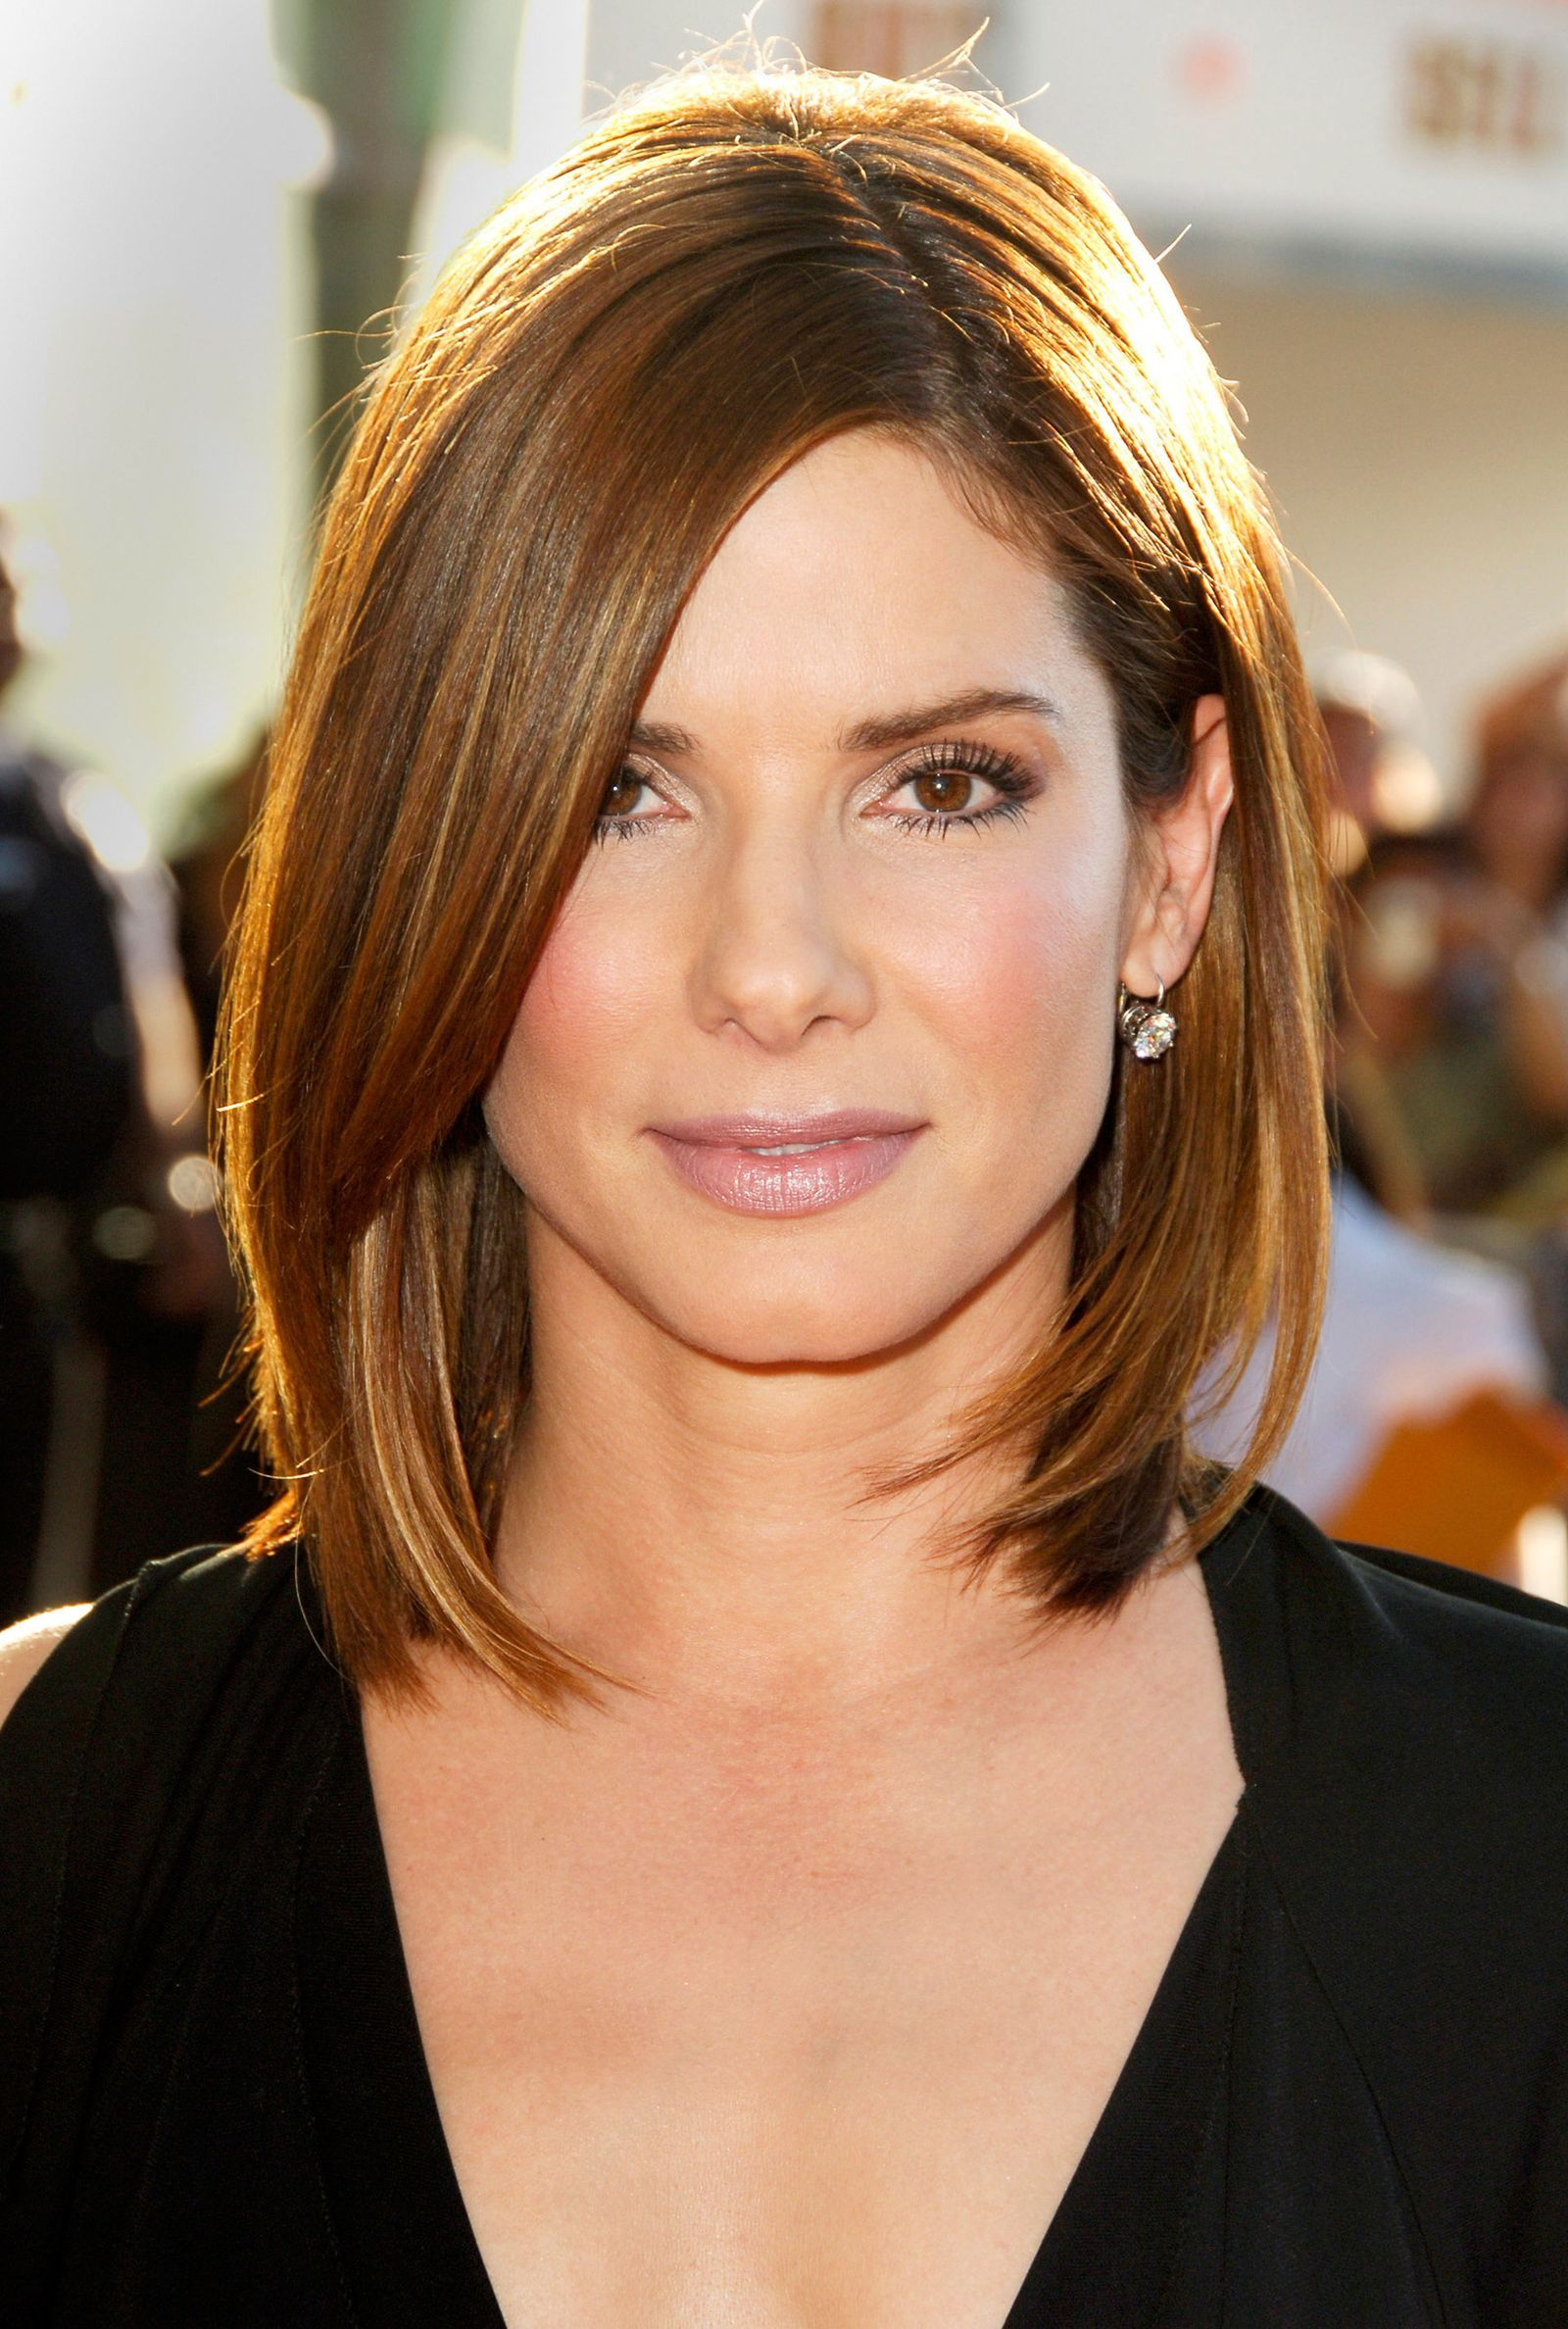 The 31 Most Iconic Haircuts of All Time